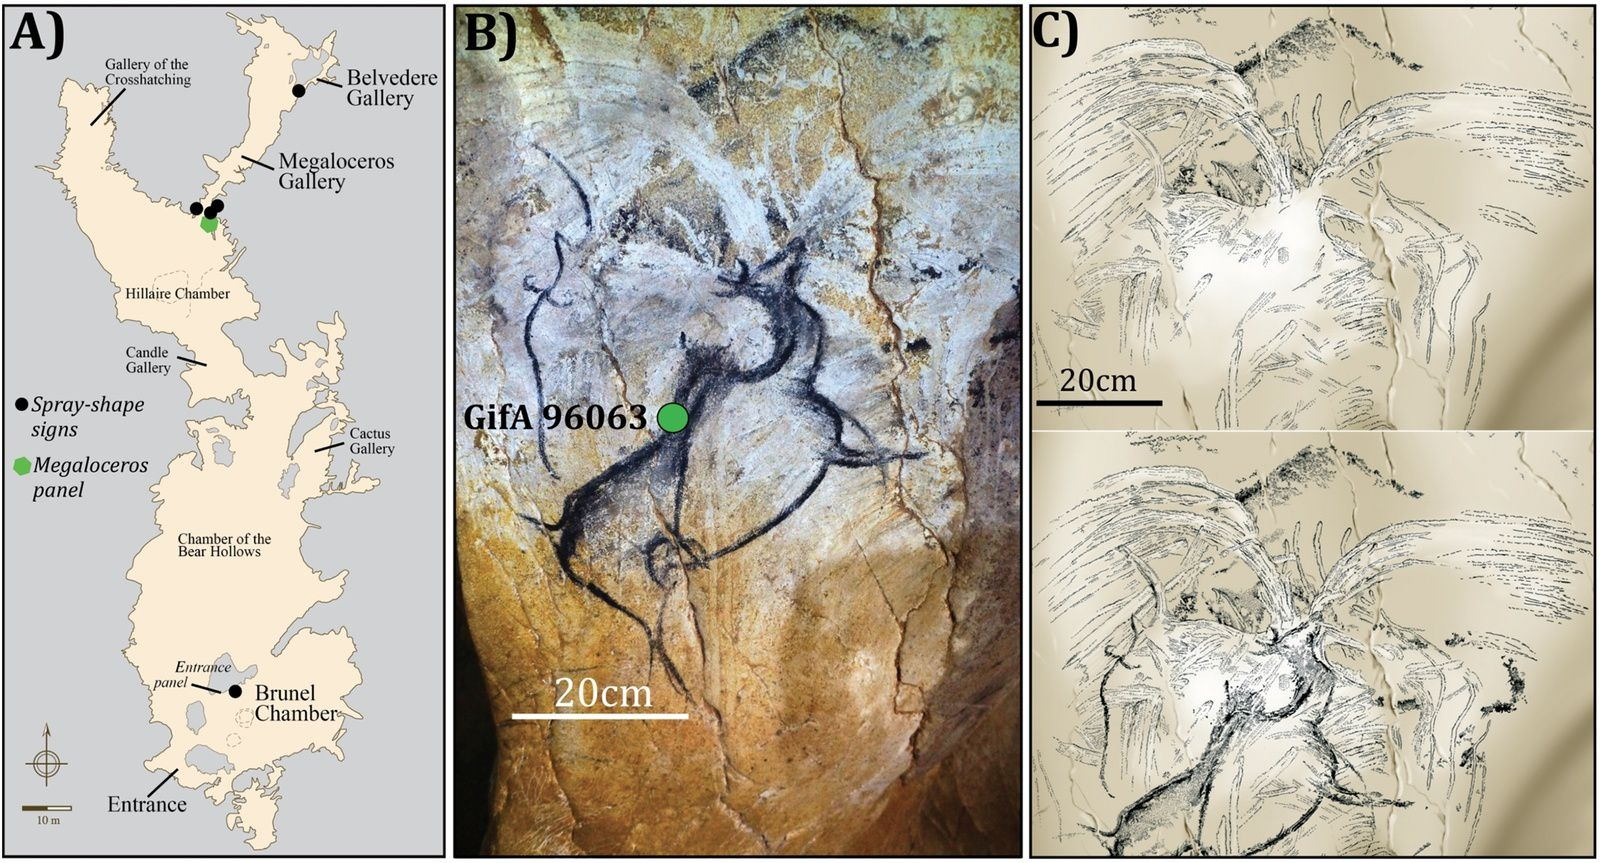 Example of a spray-shape sign from Chauvet-Pont d'Arc cave compared to the oldest known depictions of volcanic eruptions. (A) Map of the Chauvet-Pont d'Arc cave. (B) General view of the Megaloceros panel. The green dot marks the location of the 14C AMS date [8] (picture credit D. Genty). (C) Detail of the Megaloceros panel chronological succession [8] (pictures credit V. Feruglio-D. Baffier). doi:10.1371/journal.pone.0146621.g003